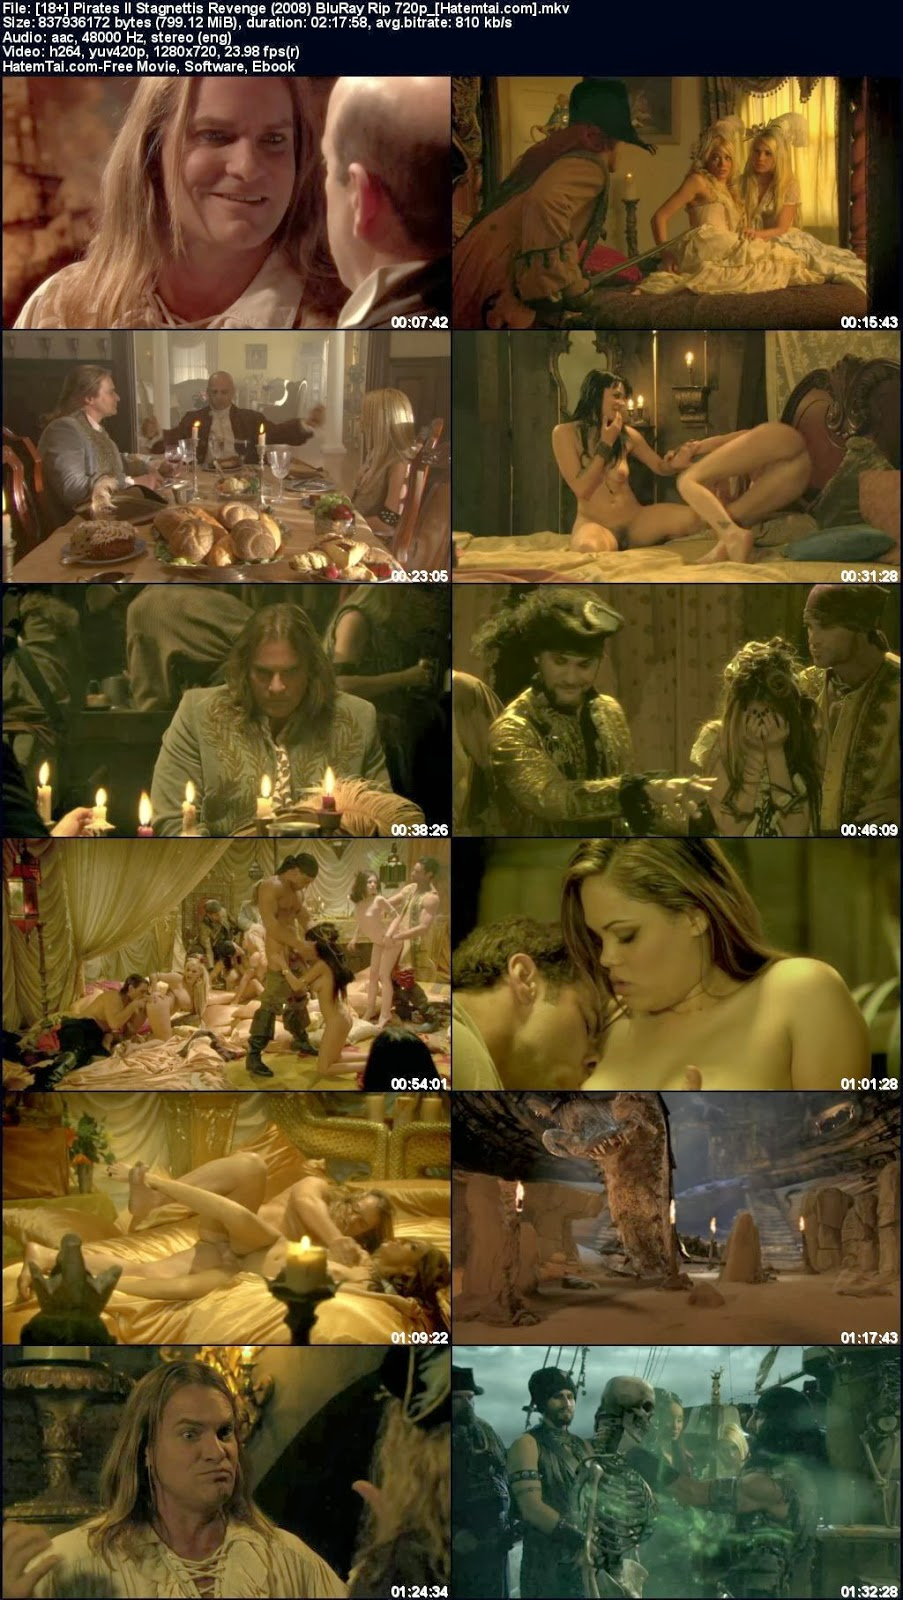 Adult pirates movie scenes nsfw scene